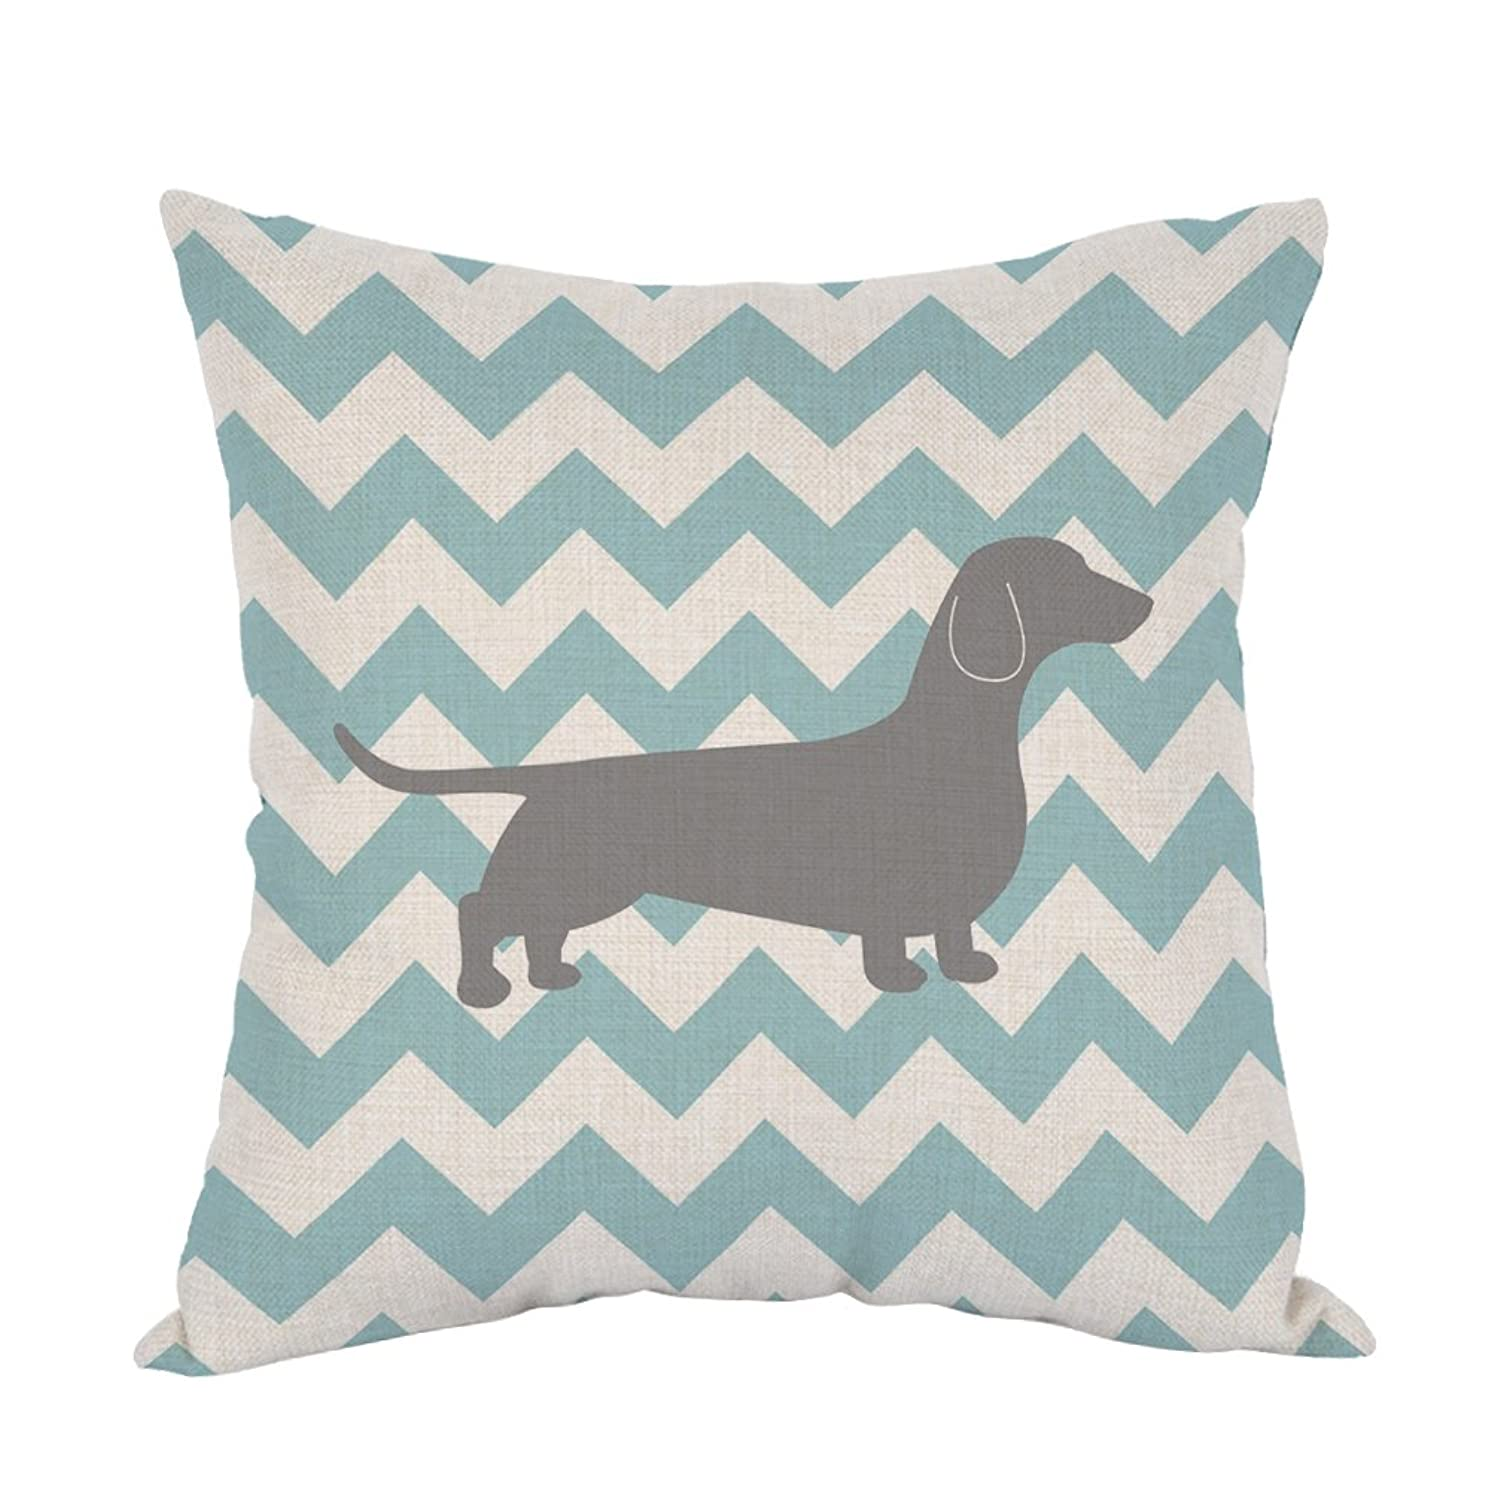 Moslion Dachshund Dog Pillow Dachshund Pattern Dog Teal Waves Striped Cotton Linen Cushion Cover Square Pillow Cases for Men Women Boys Girls Kids Pillowcase Sofa Bedroom Livingroom 18